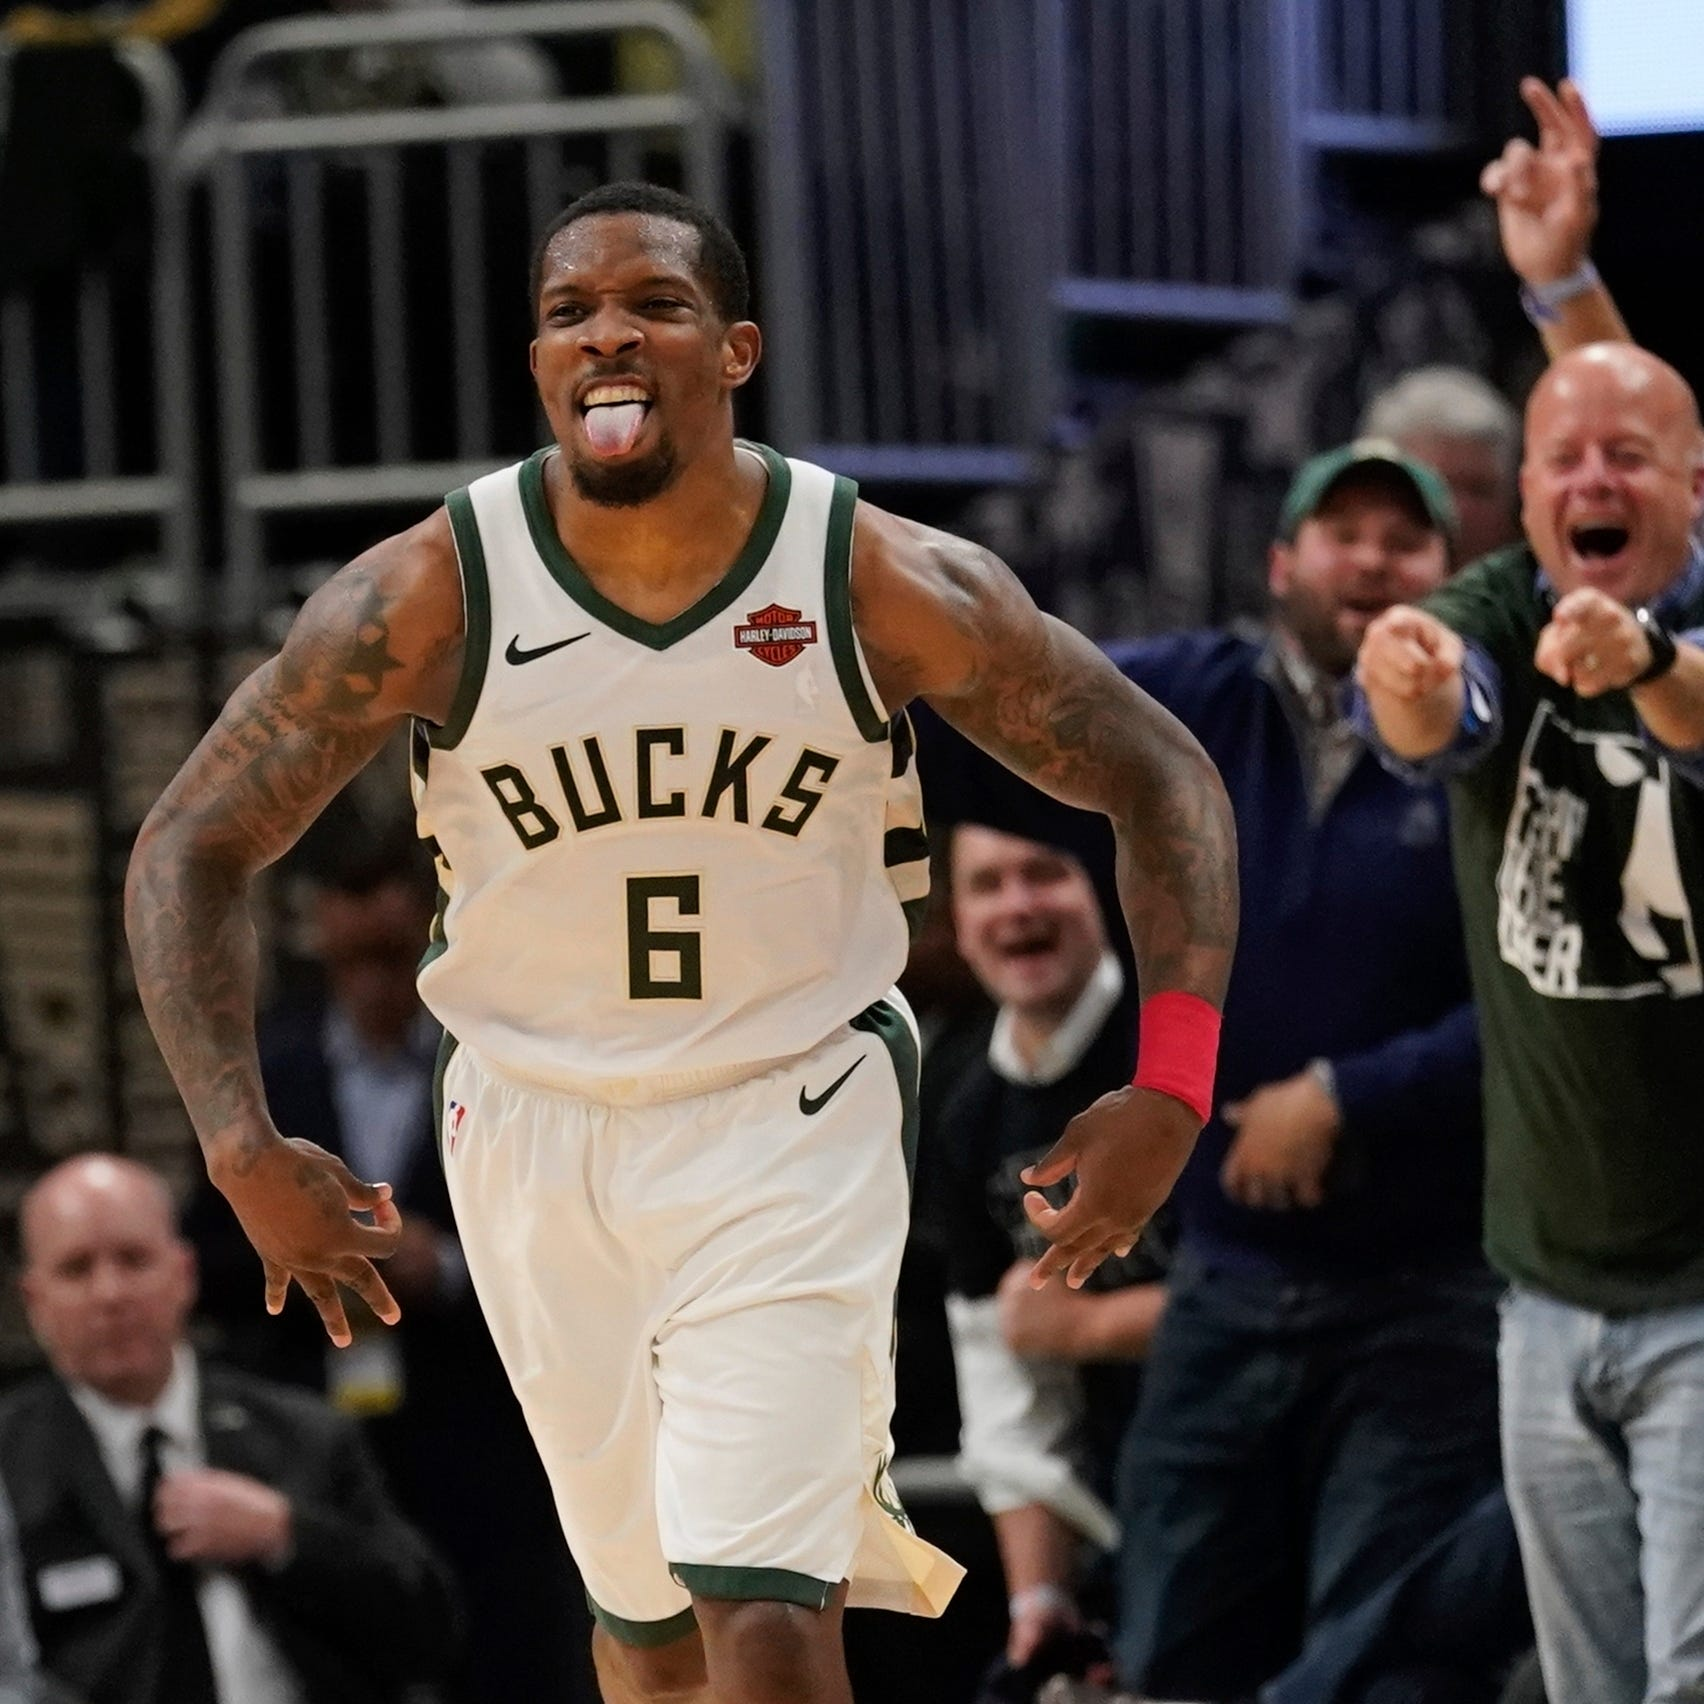 Bucks still work on late, close game situations – even though they've been winning by a lot lately